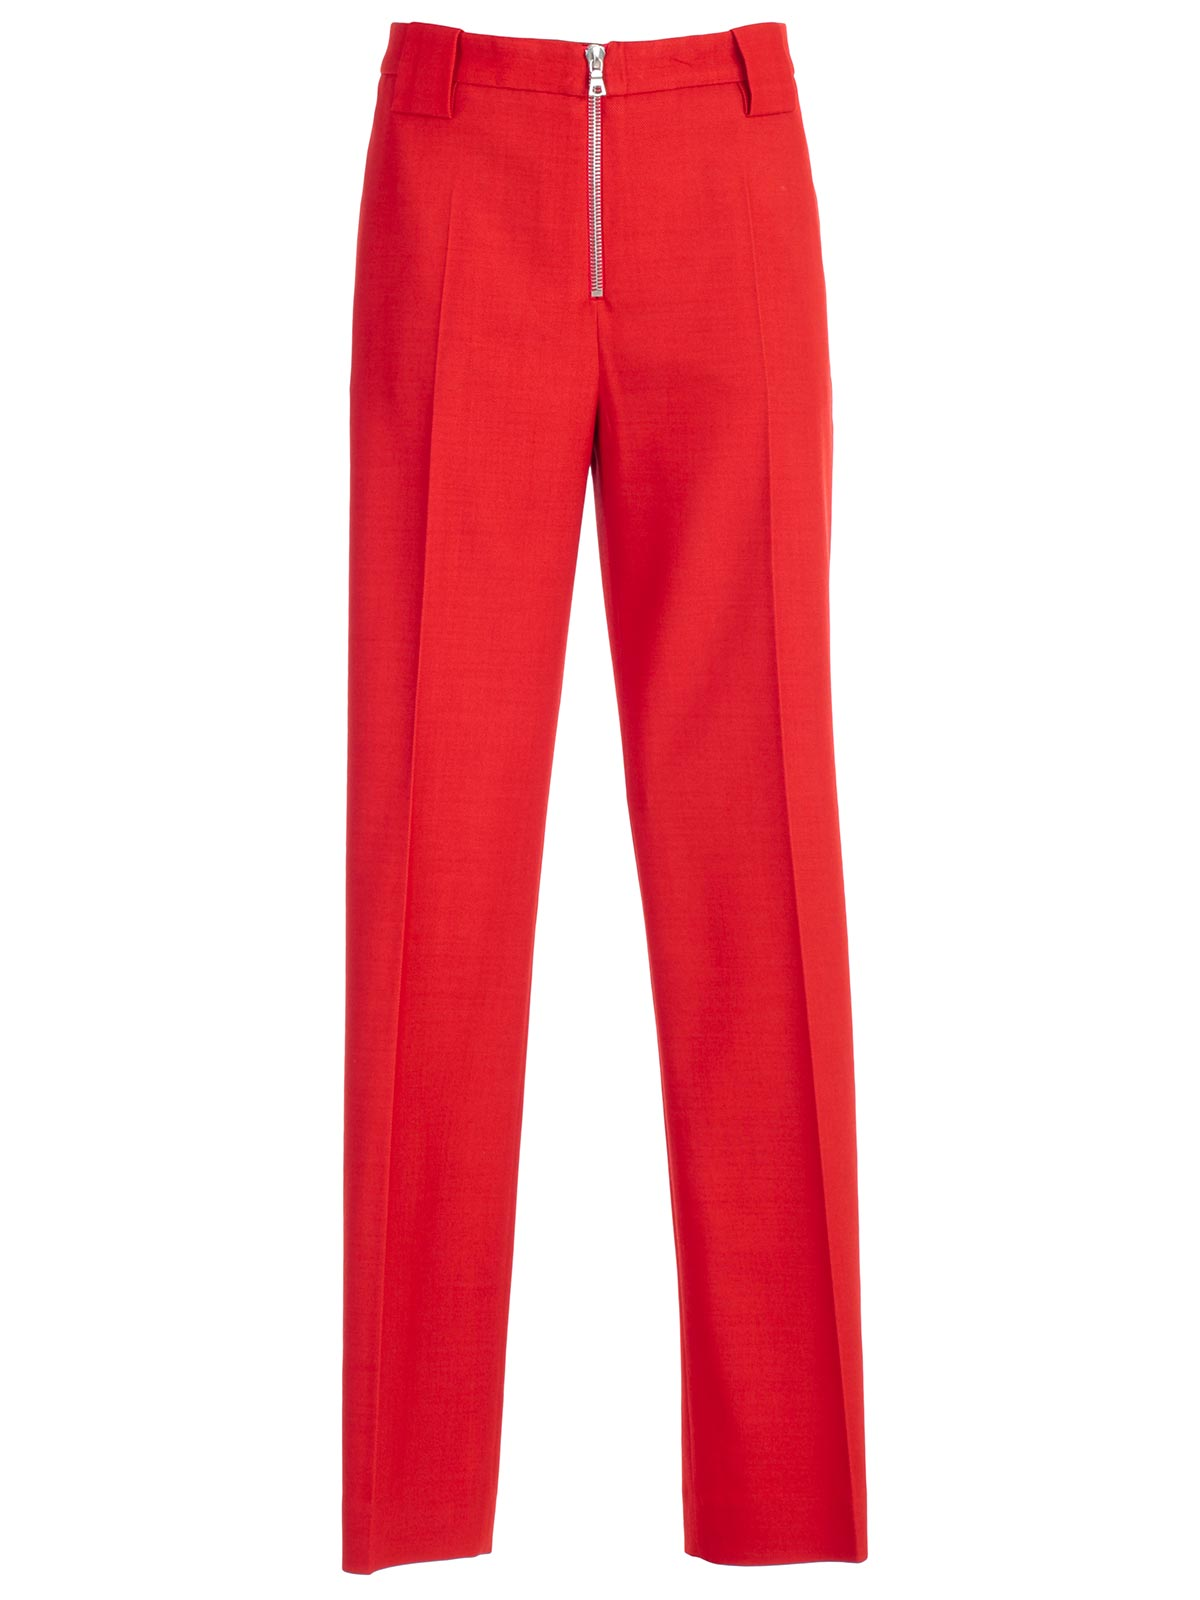 Picture of Victoria, Victoria Beckham Trousers